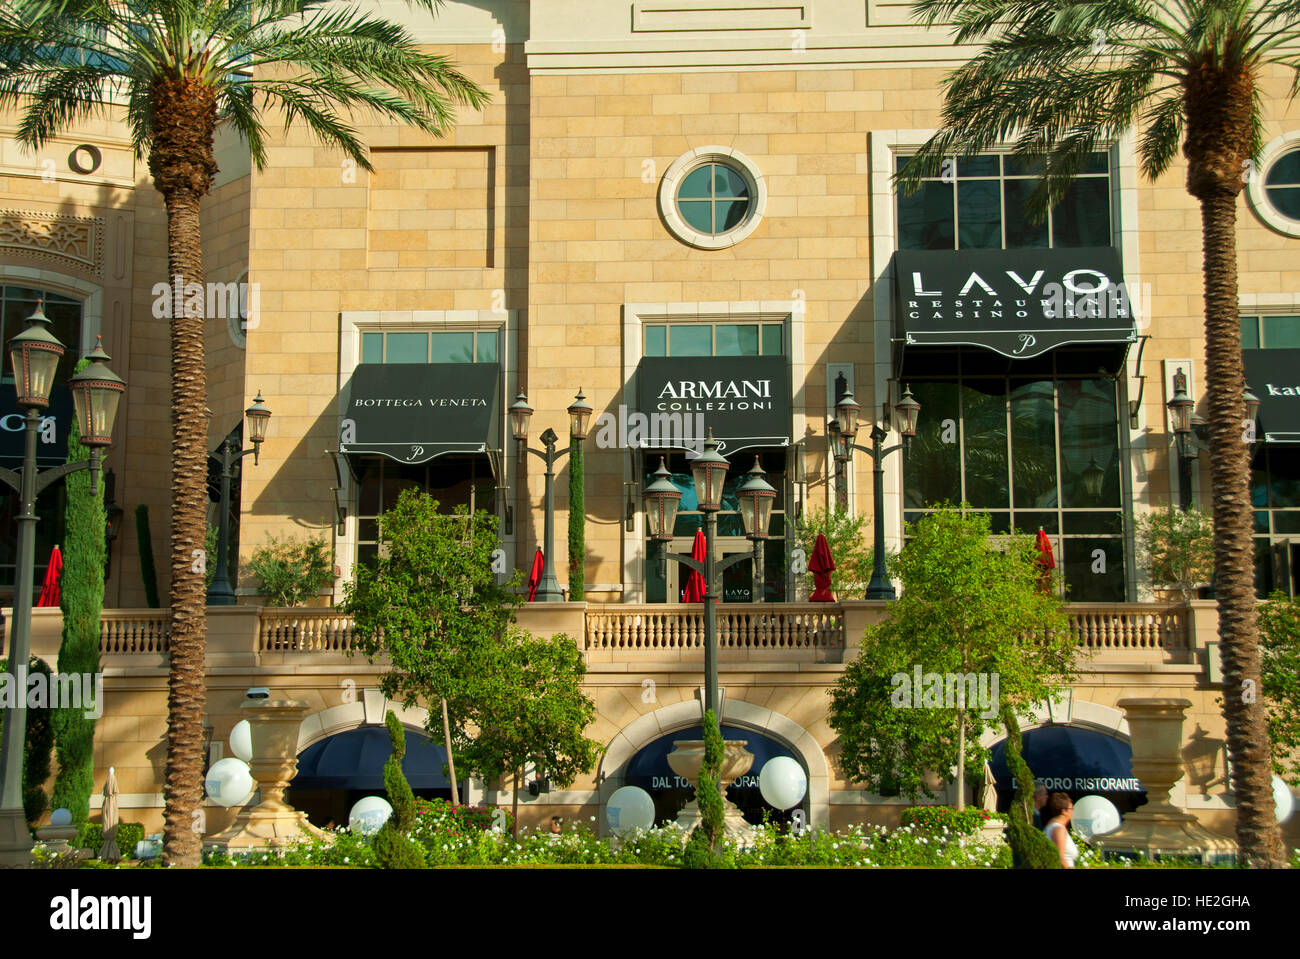 Typical upscale shops and restaurant along the strip in Las Vegas, Nevada - Stock Image